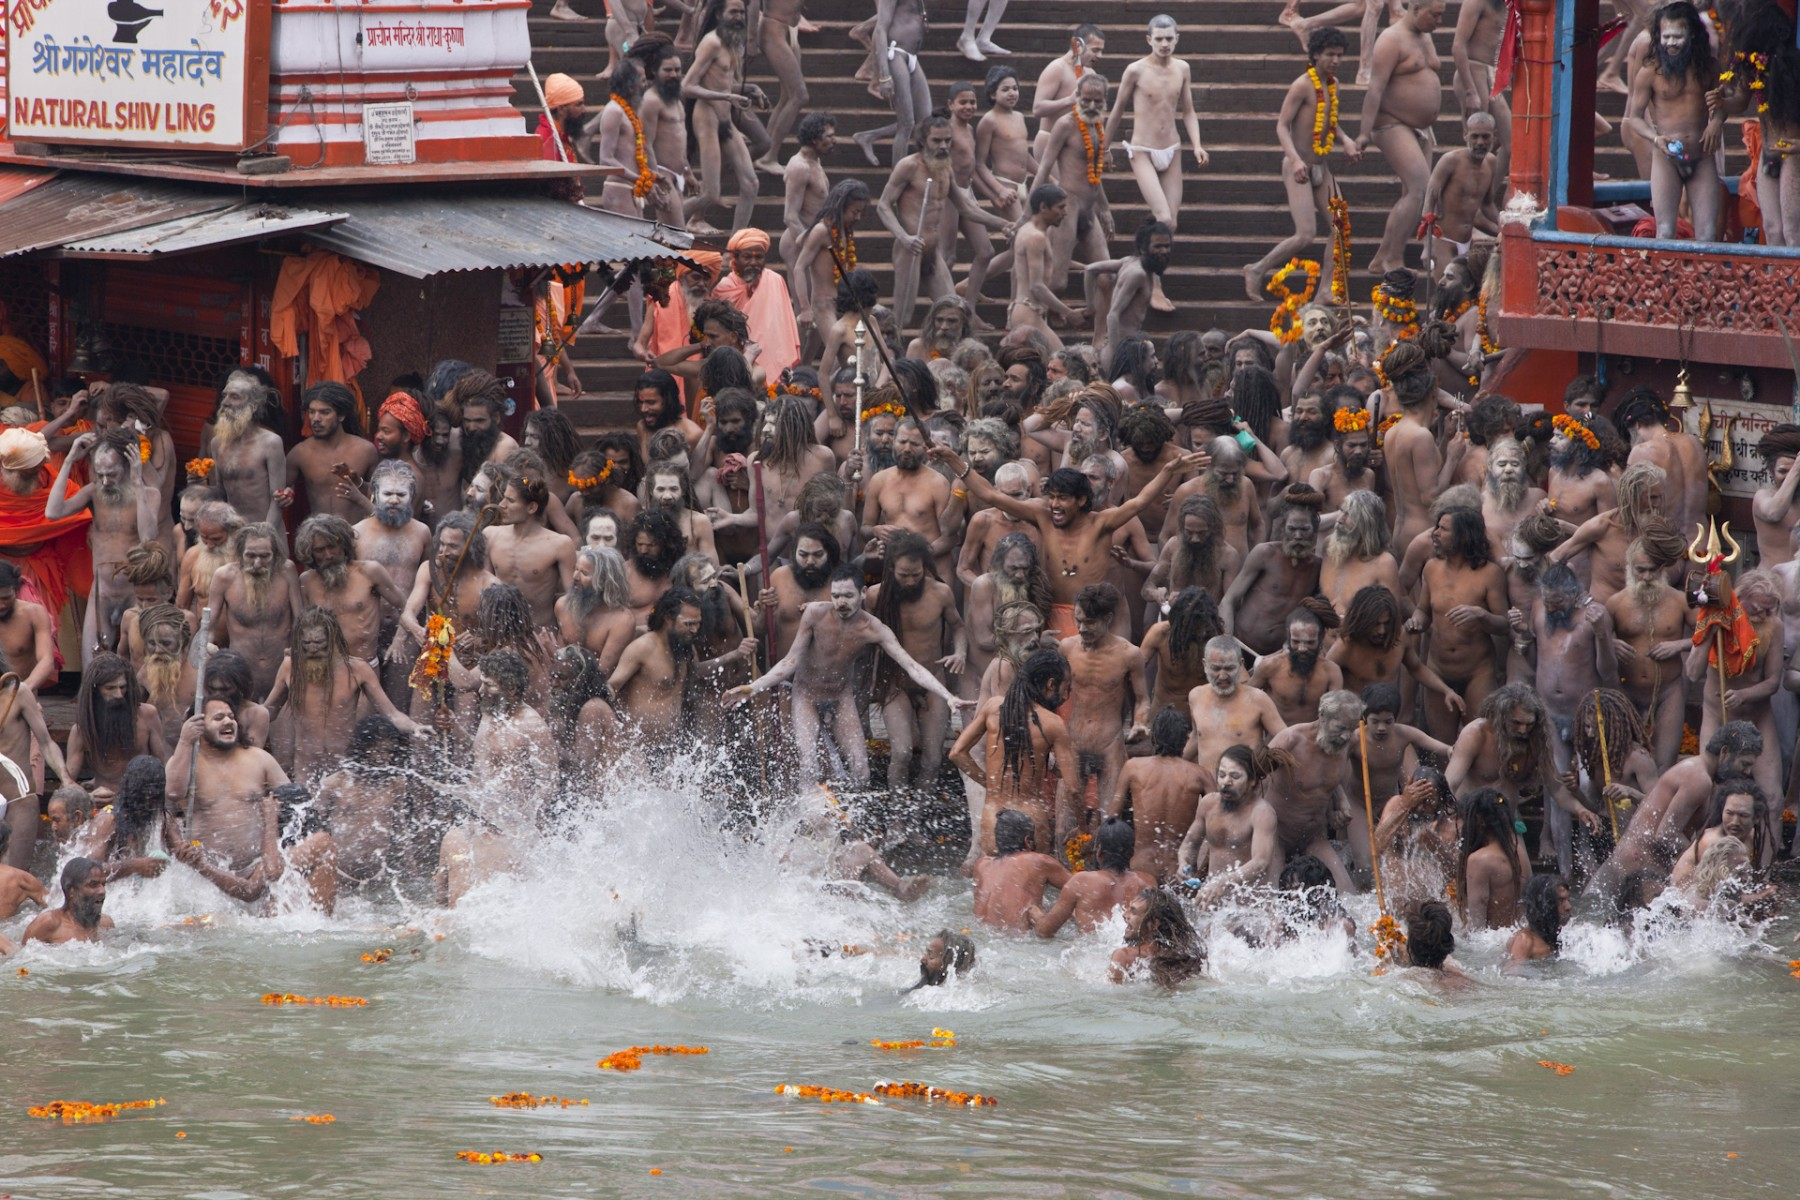 Royal Bath, Kumbh Mela, Hardwar